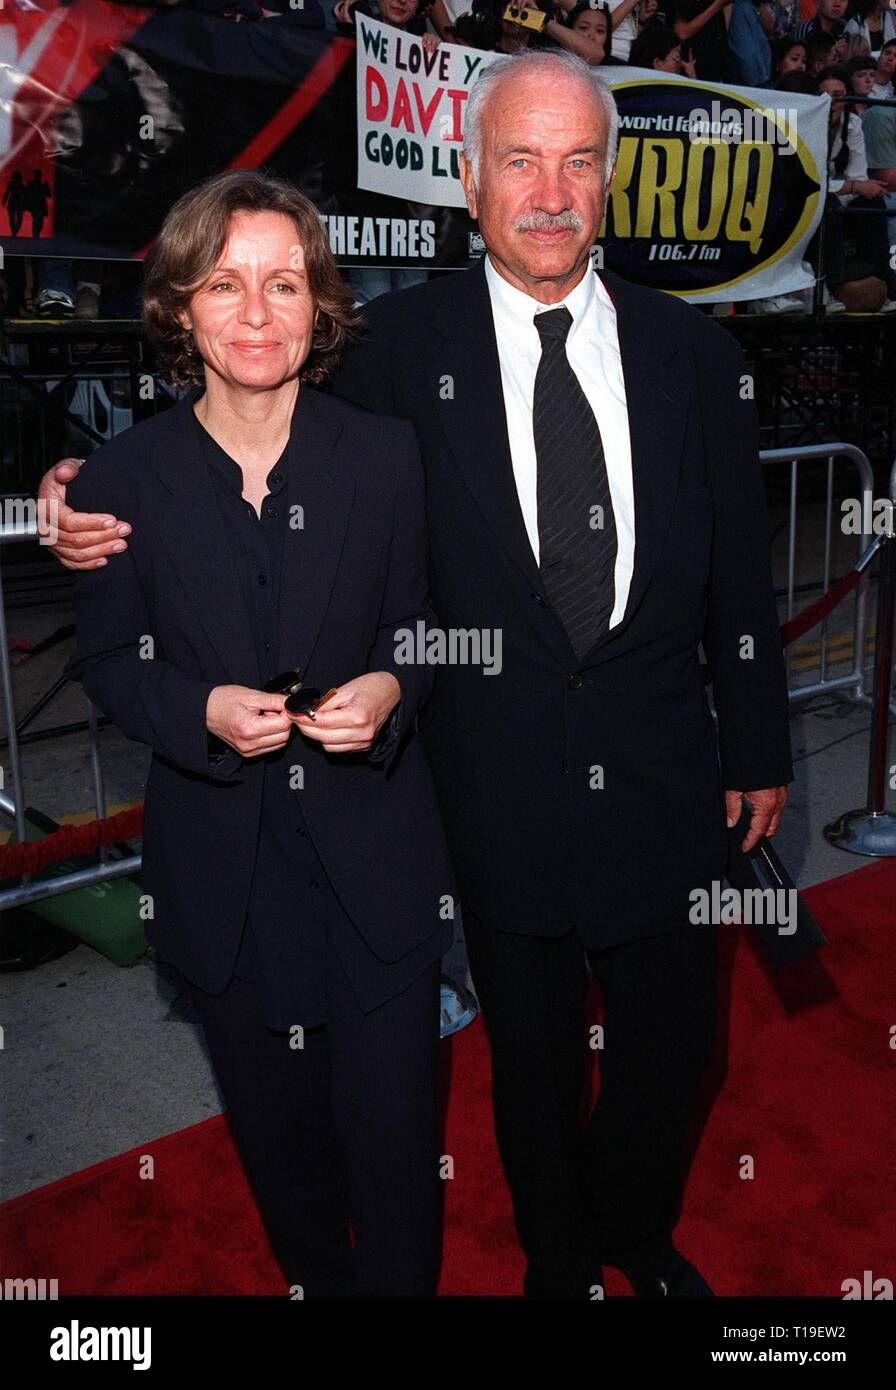 LOS ANGELES, CA - September 8, 2011:  Actor ARMIN MUELLER-STAHL & wife at the world premiere, in Los Angeles, of his new movie 'The X-Files.' - Stock Image